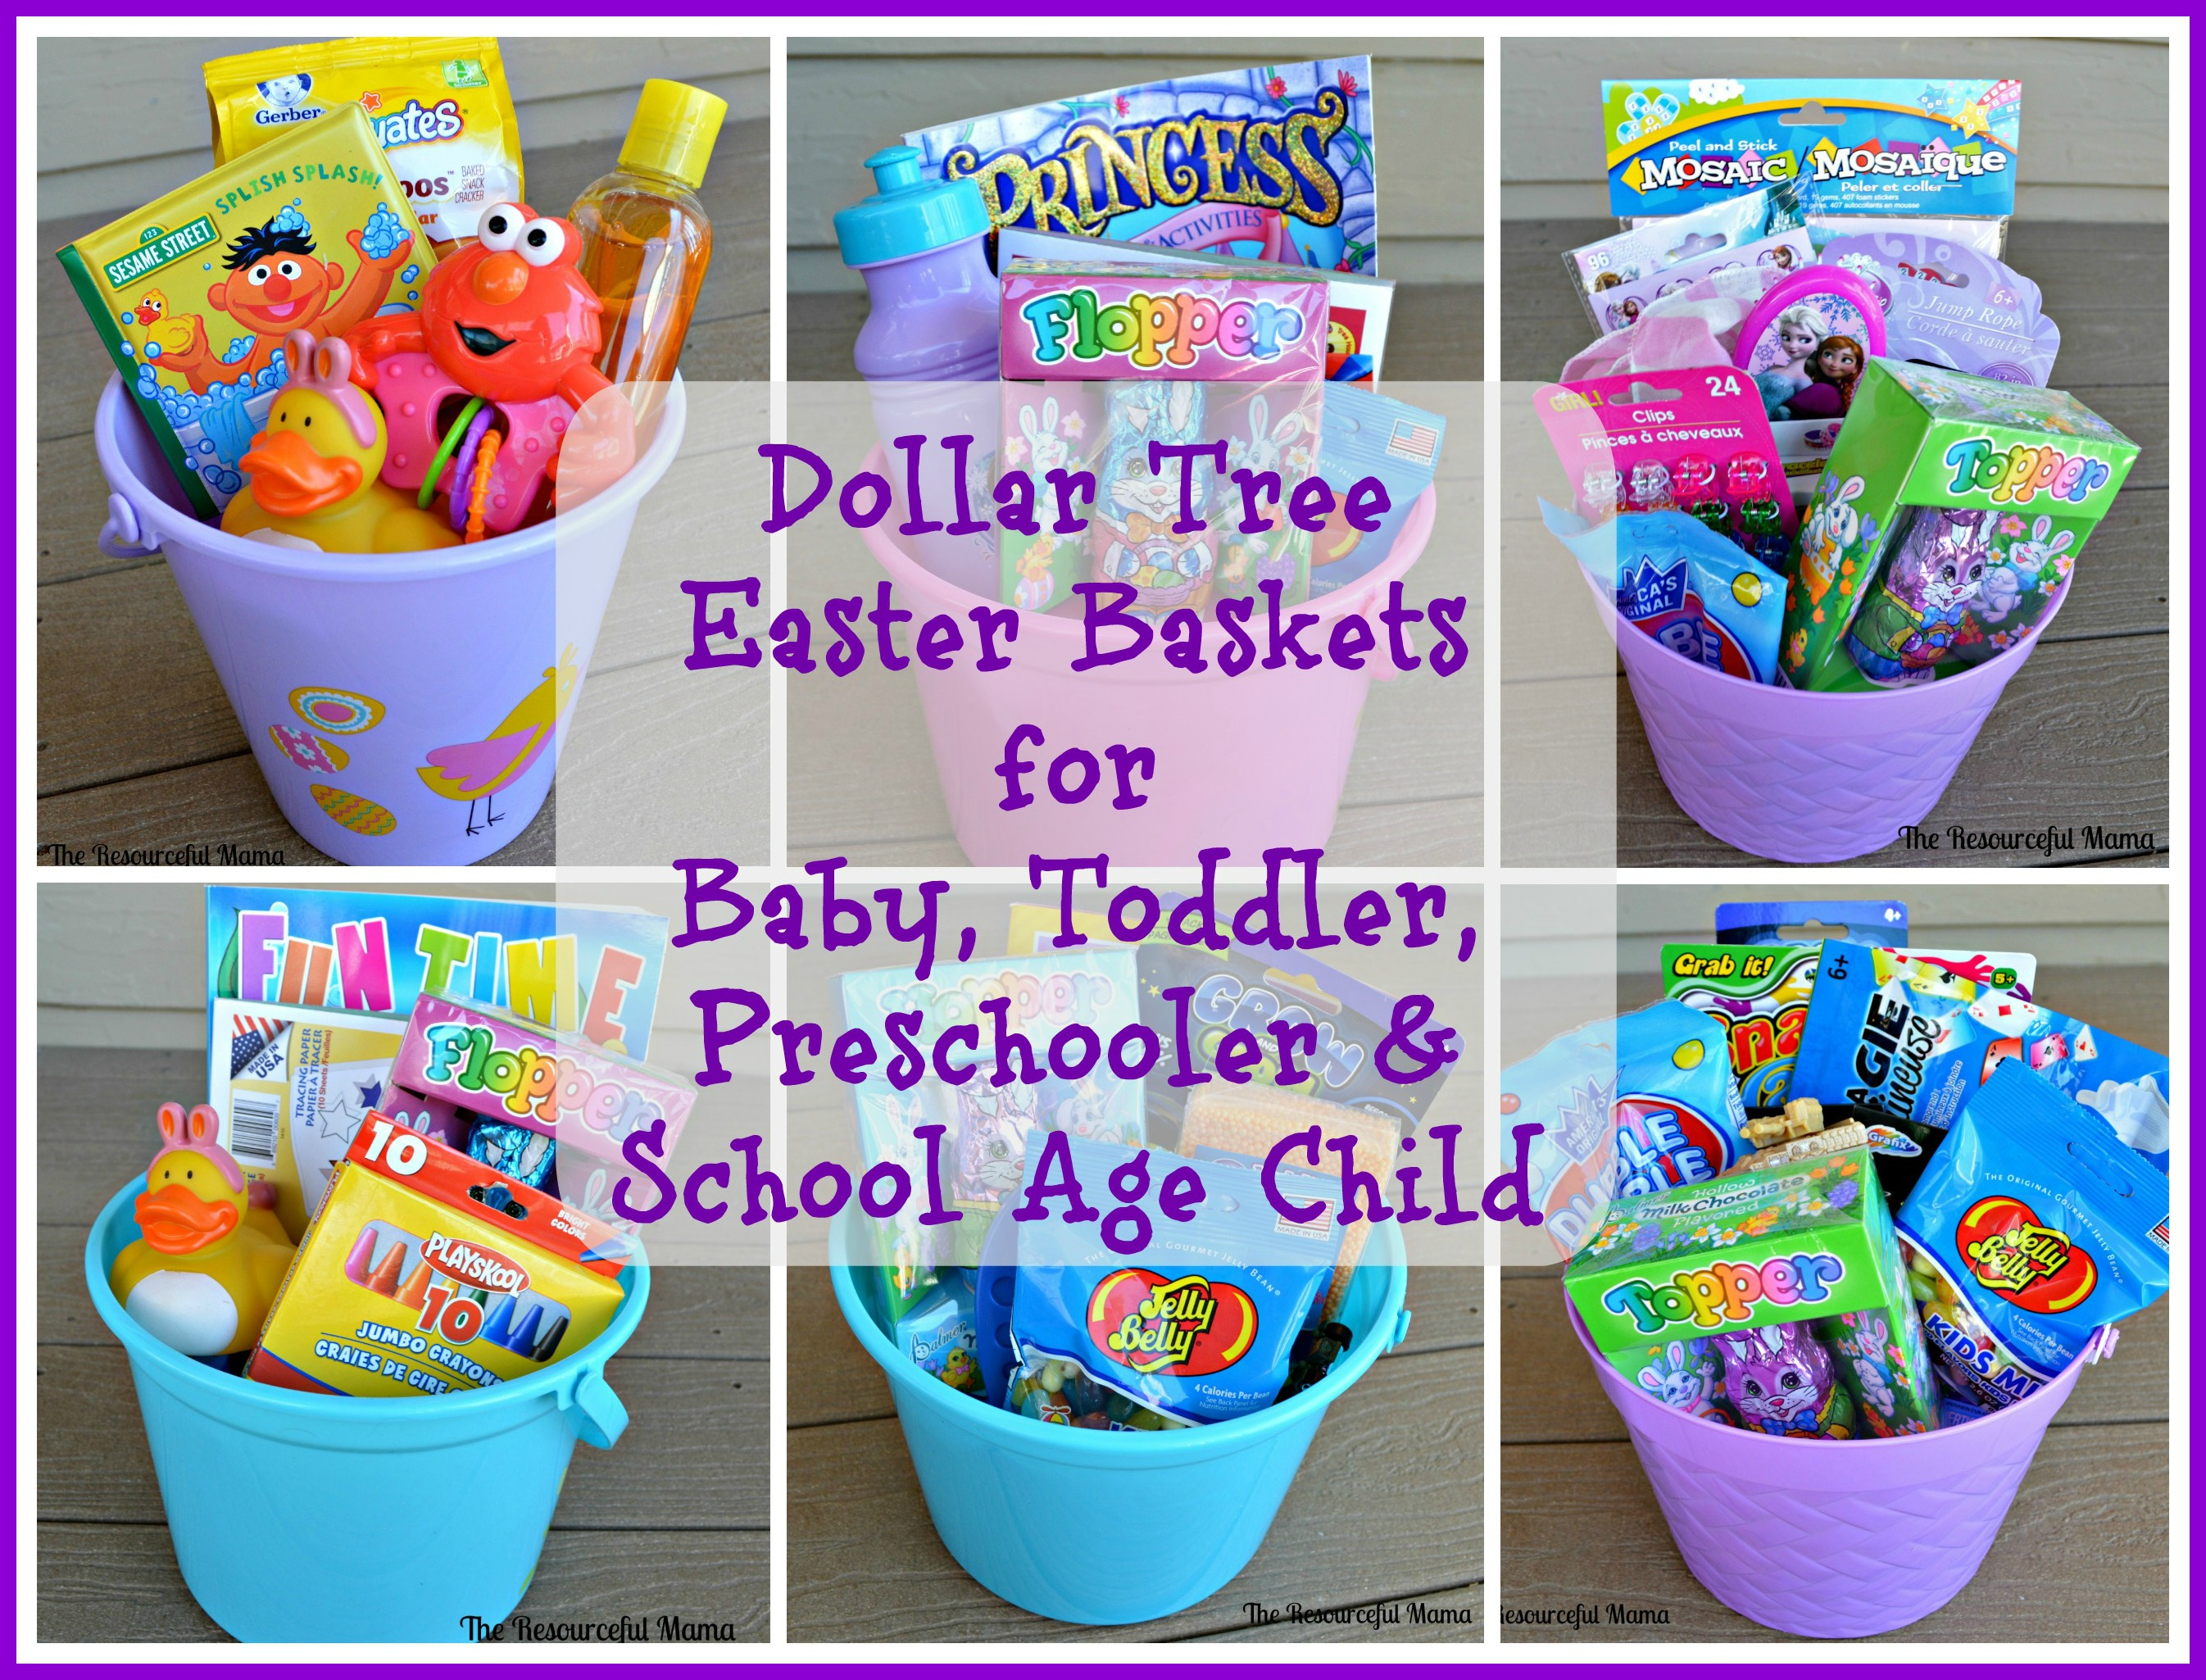 Dollar tree easter baskets the resourceful mama dollar tree easter basket for baby toddler preschooler school age child negle